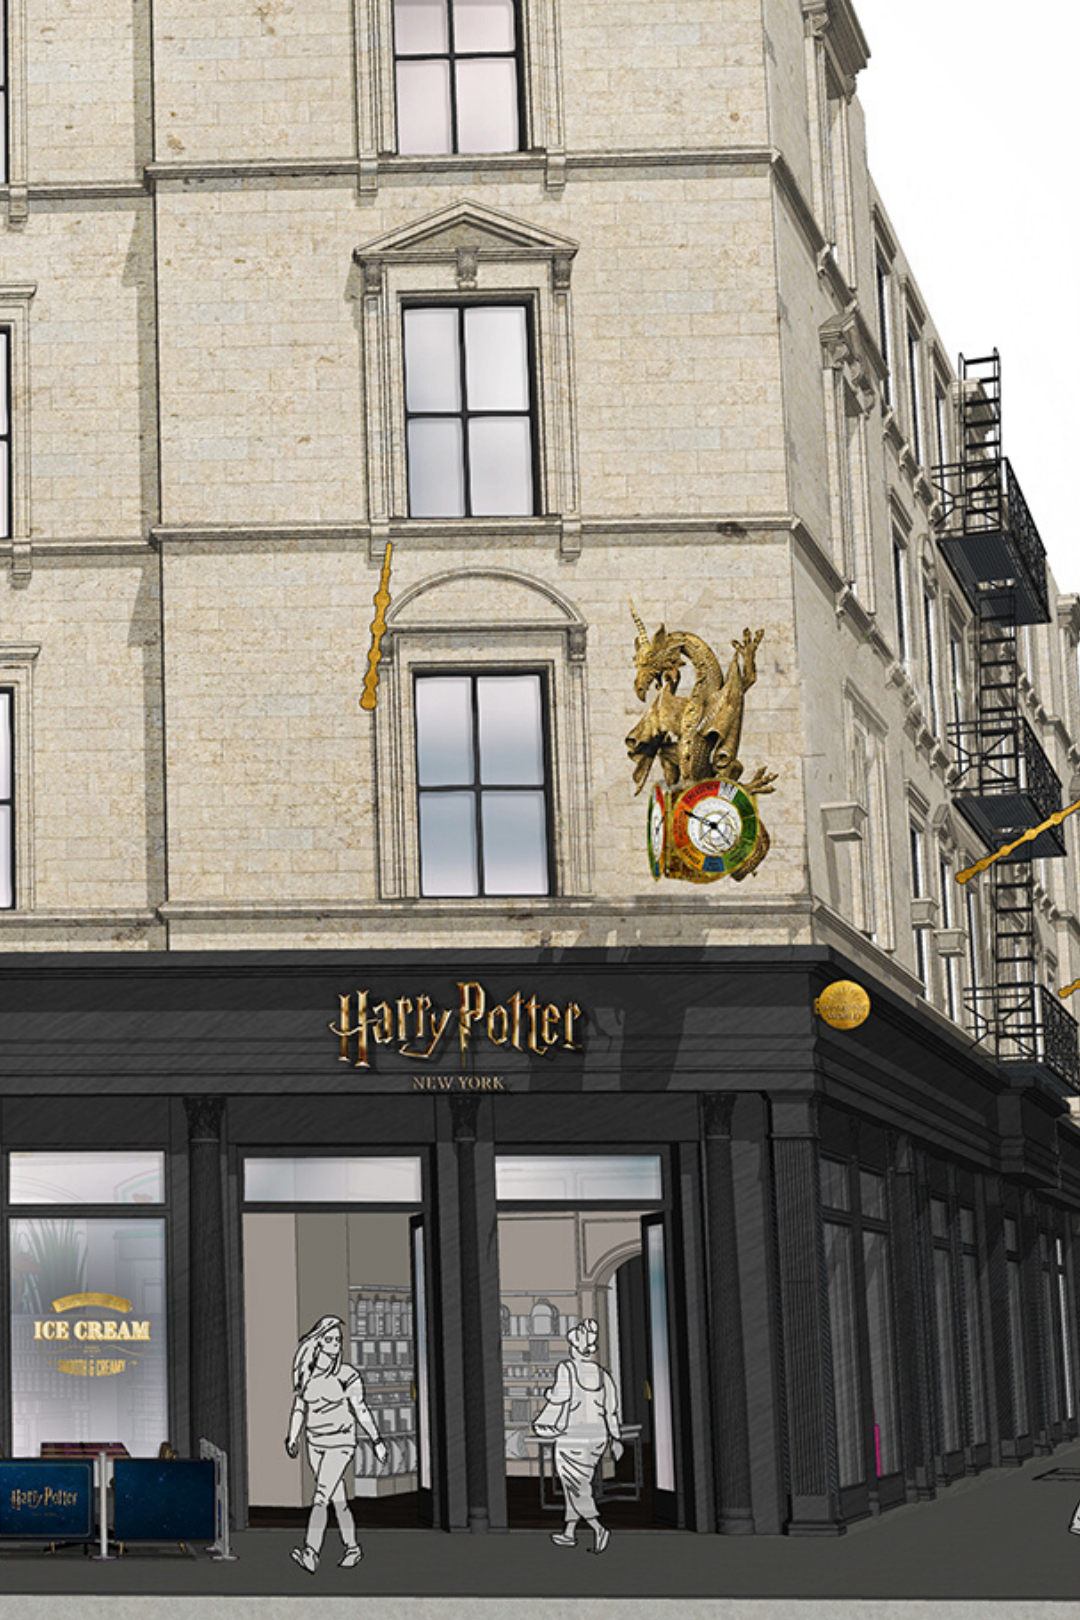 Pin By Callie Risinger On New York City In 2021 Harry Potter Store First Harry Potter Nyc